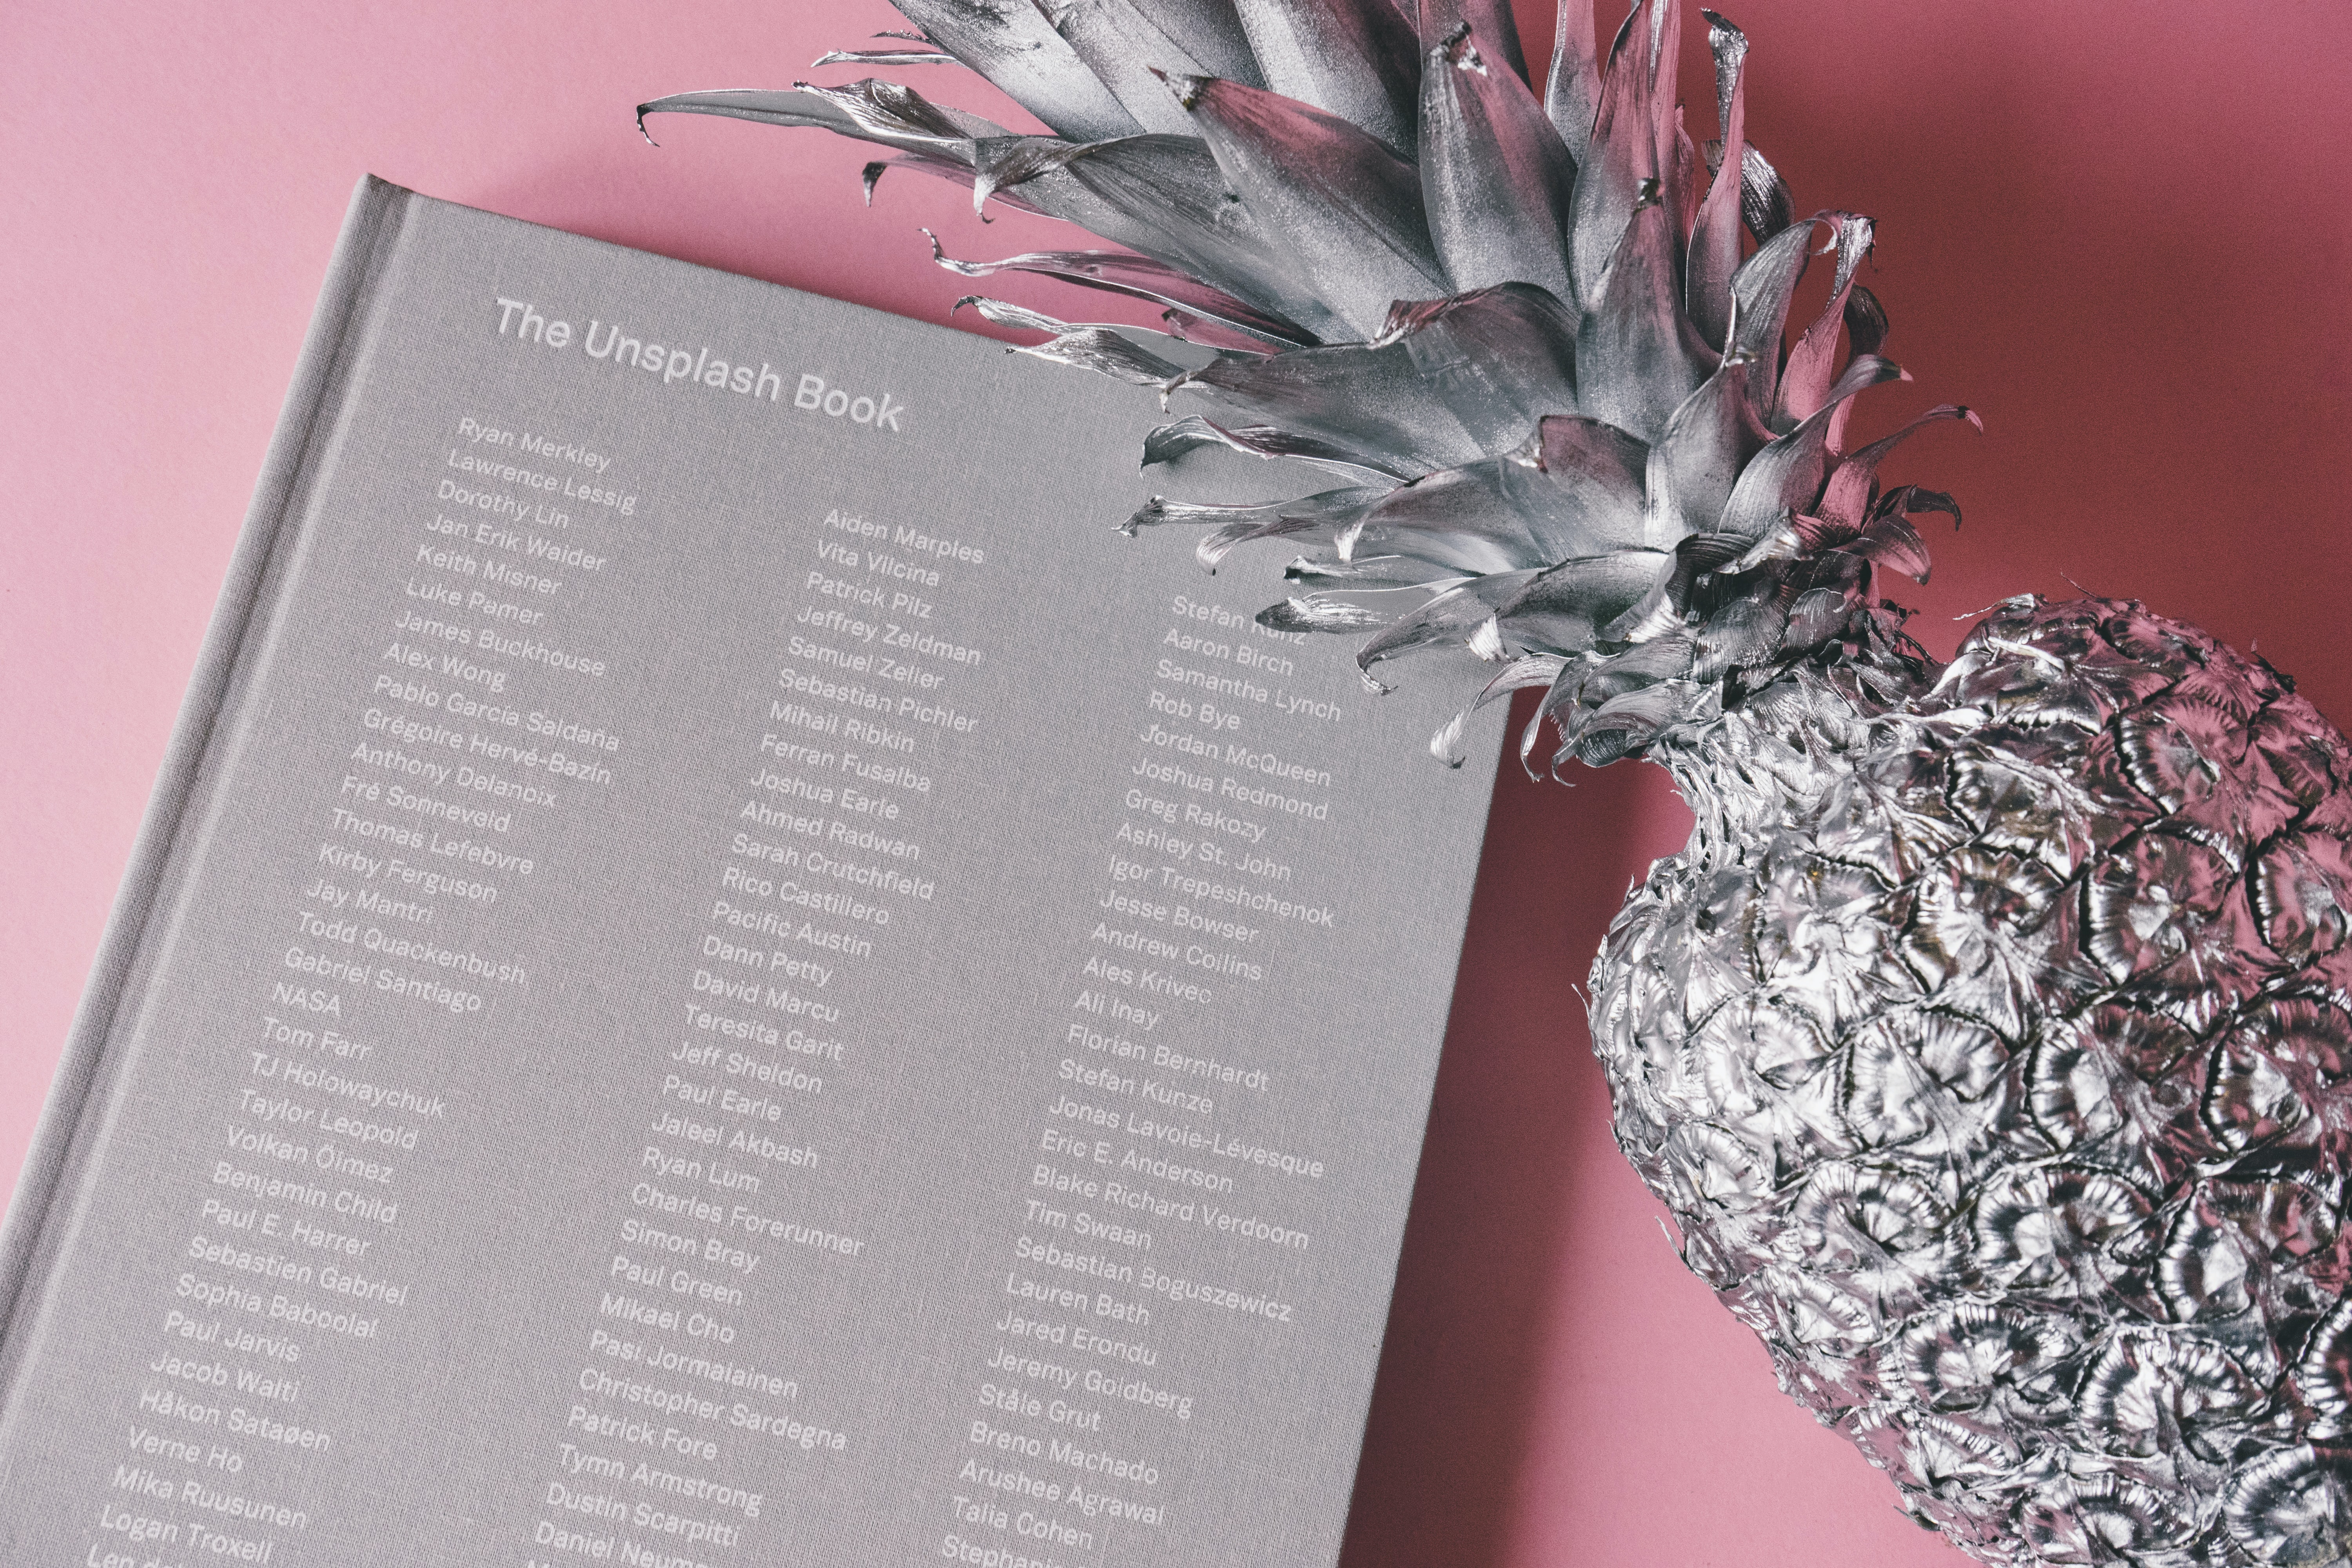 A gray painted pineapple next to a gray hardback book.